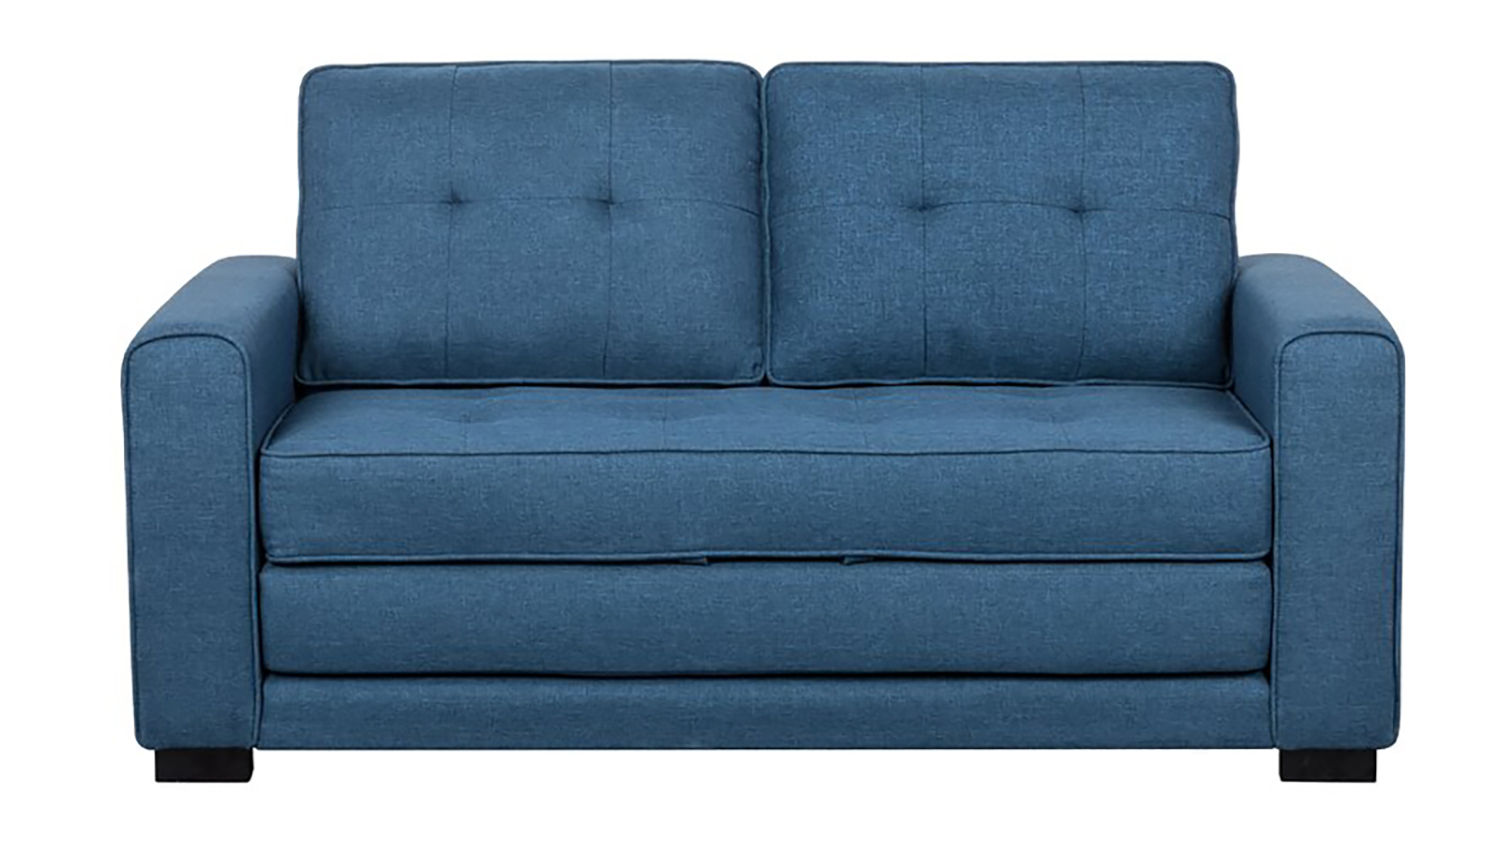 The Best Sleeper Sofas You Can Buy For Less Than 500